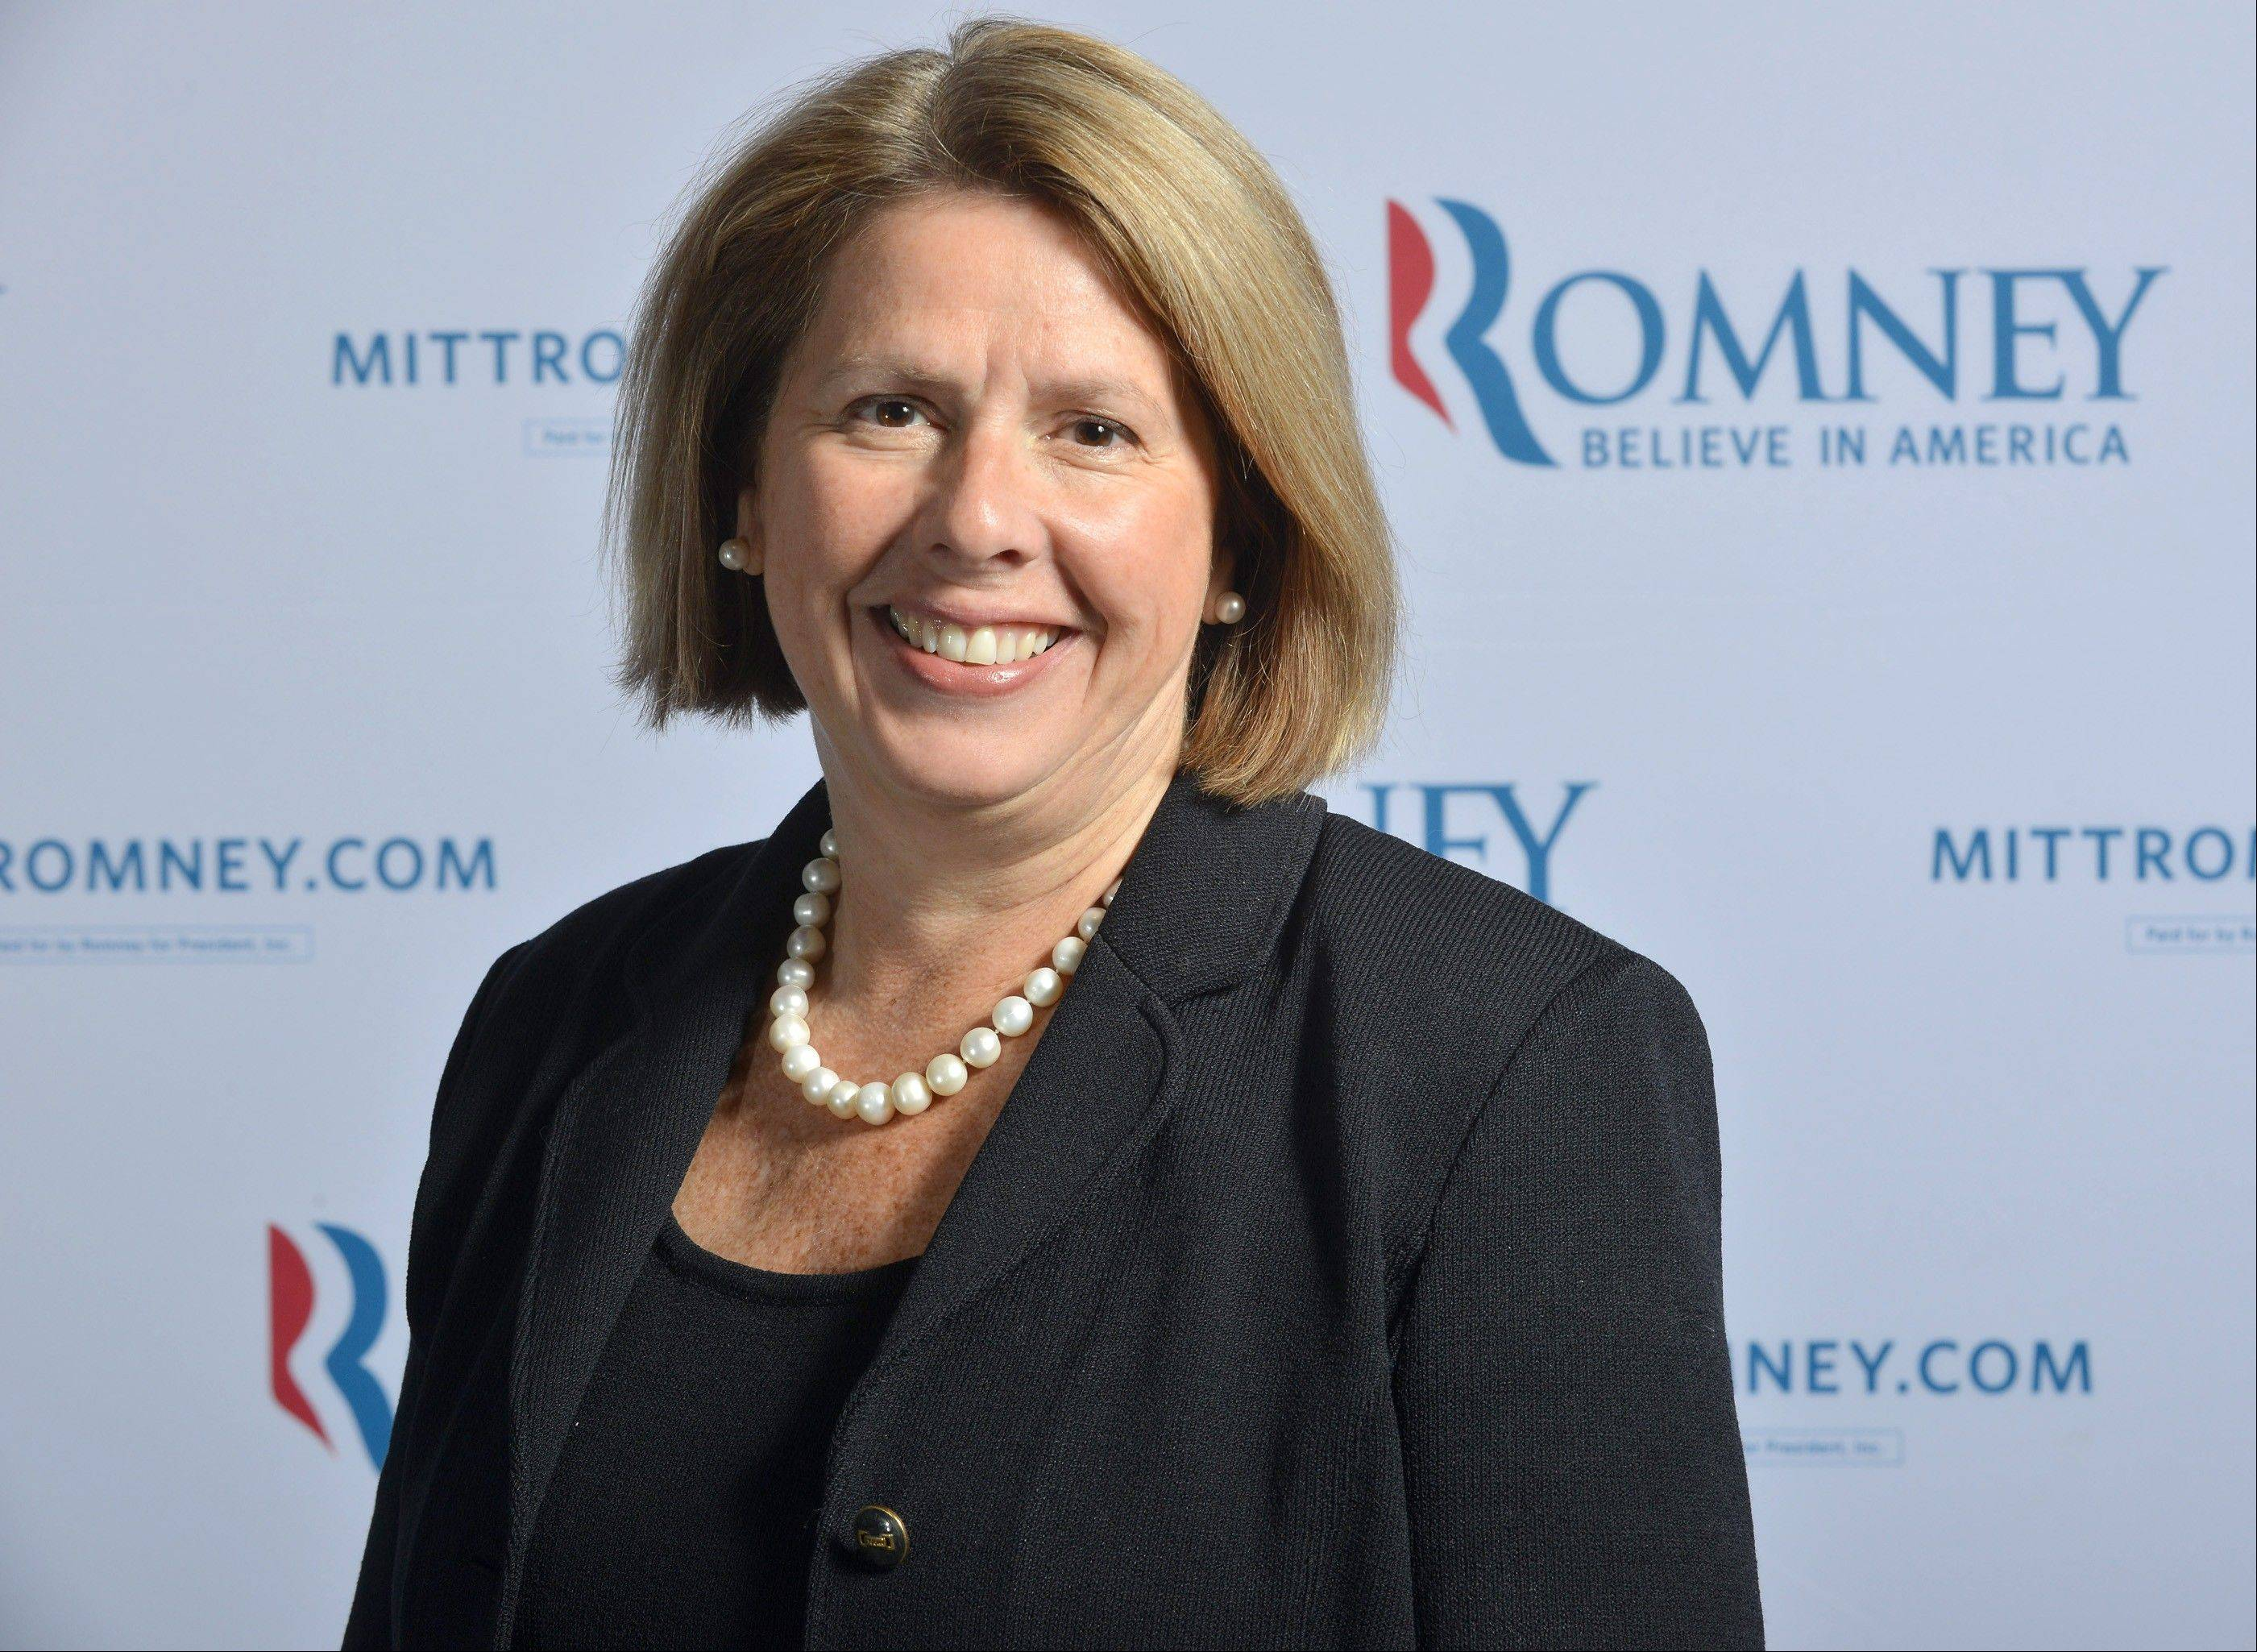 This June 1, 2012 file photo shows Romney Campaign senior adviser Beth Myers at Republican presidential candidate's, Mitt Romney's, campaign headquarters in Boston, Mass. Myers was Romney's chief of staff during his term as Massachusetts governor. She also ran his 2008 bid and is now leading his search for a vice presidential running mate. Myers is personally close to the candidate and his wife, Ann.